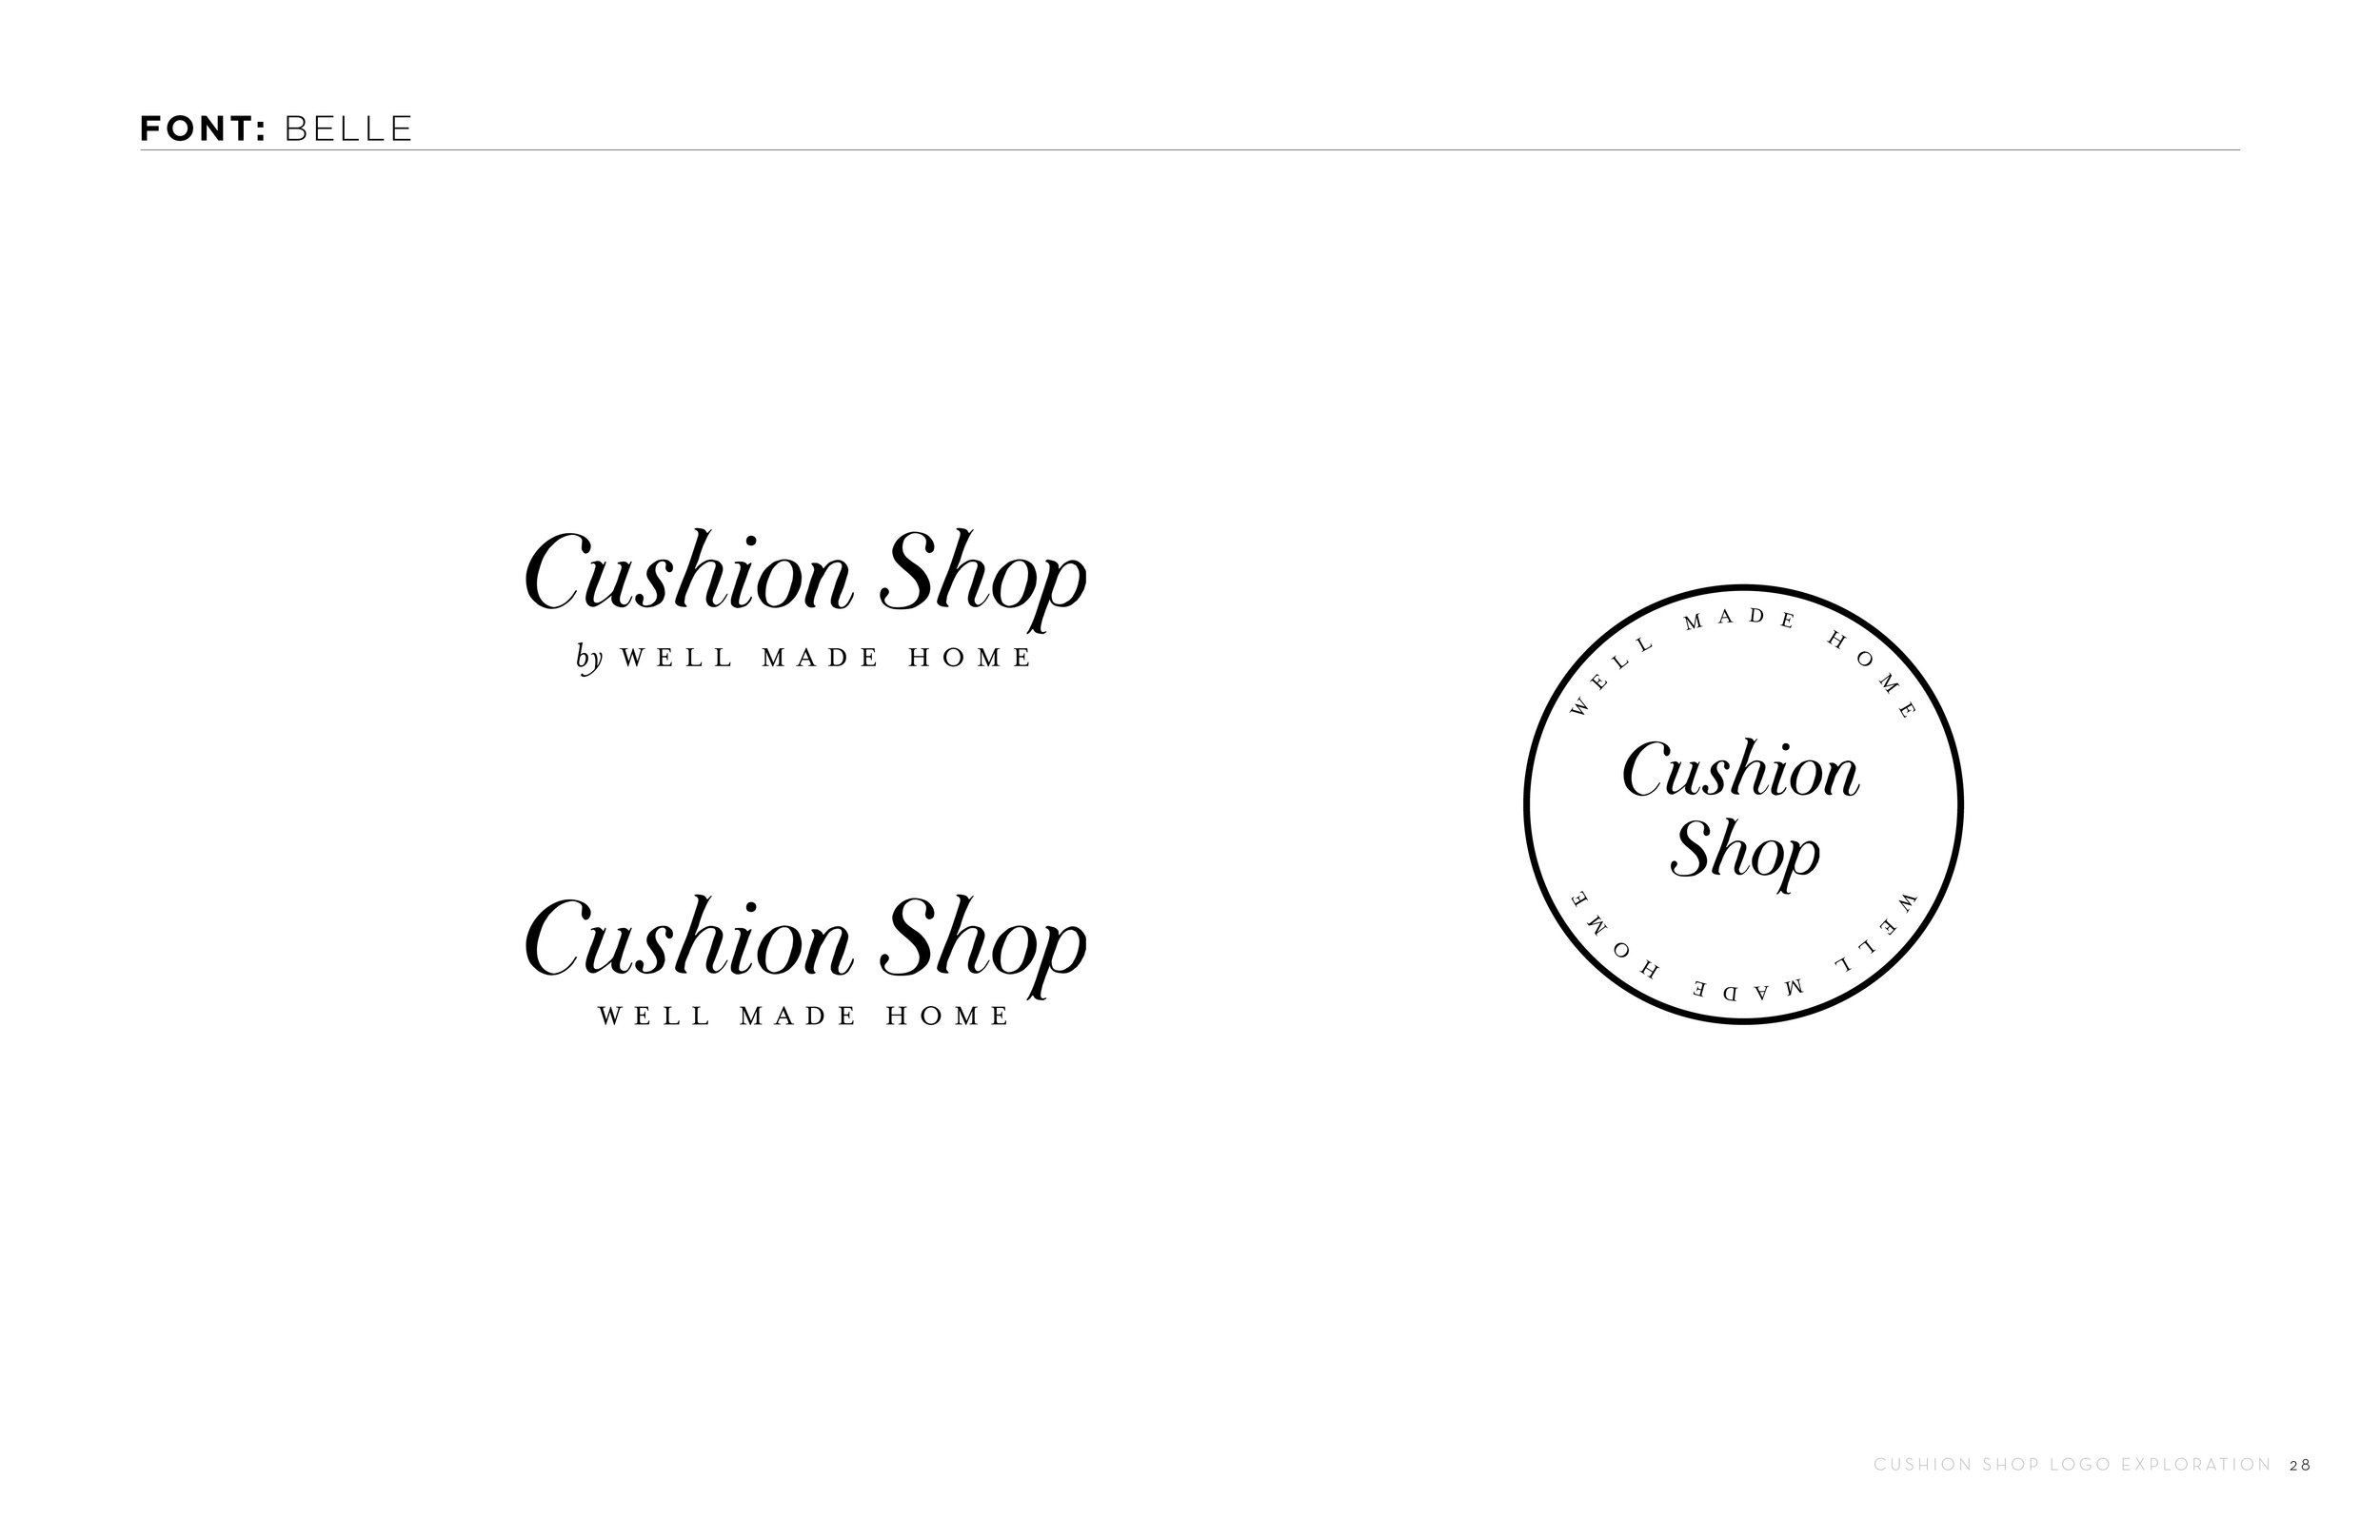 Cushion Shop_Logo Concepts_R10_28.jpg